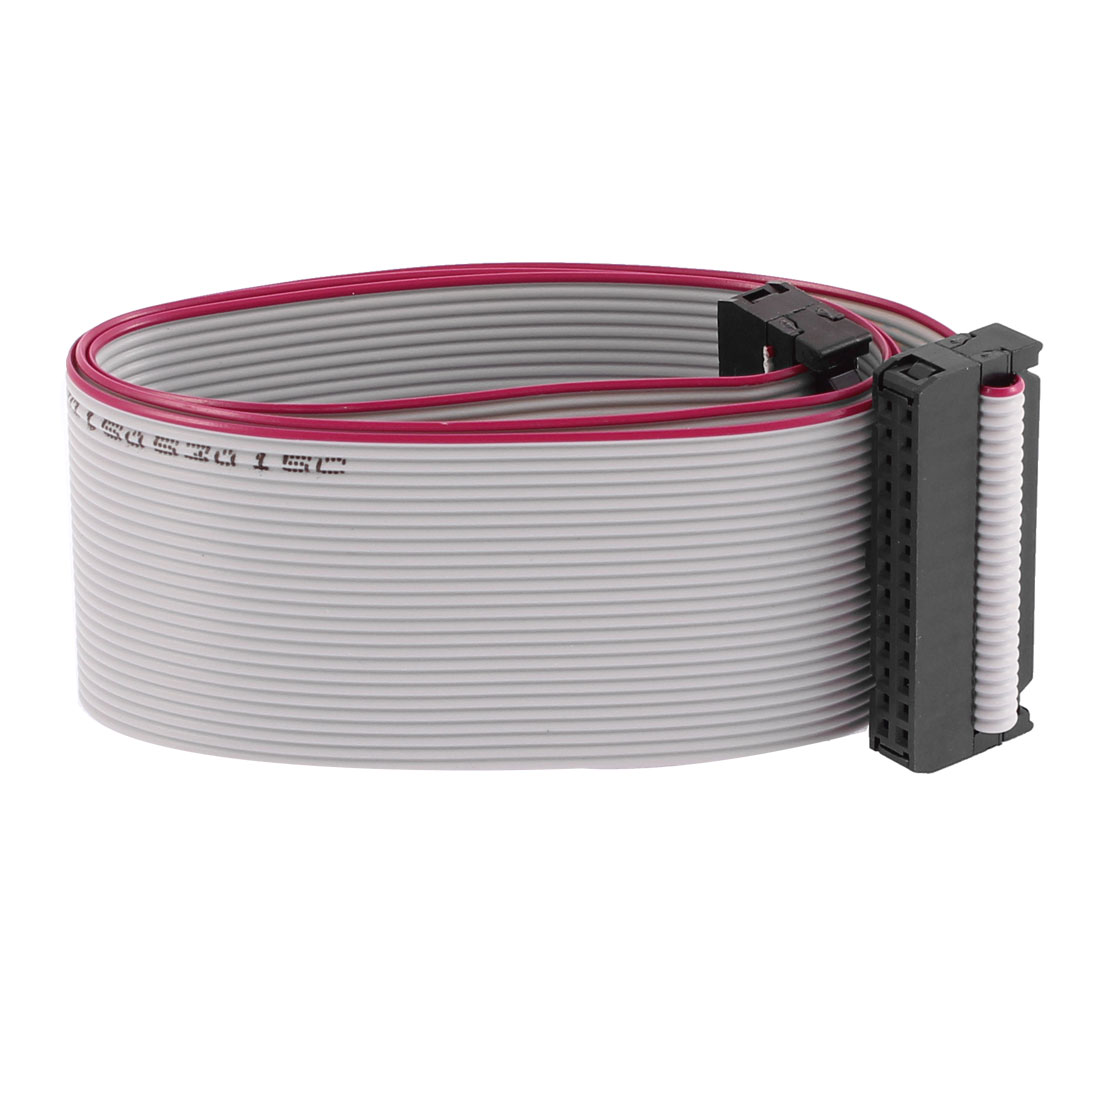 2.54mm Pitch 26 Pins 26 Wires F/F IDC Connector Flat Ribbon Cable 20 Inch Length